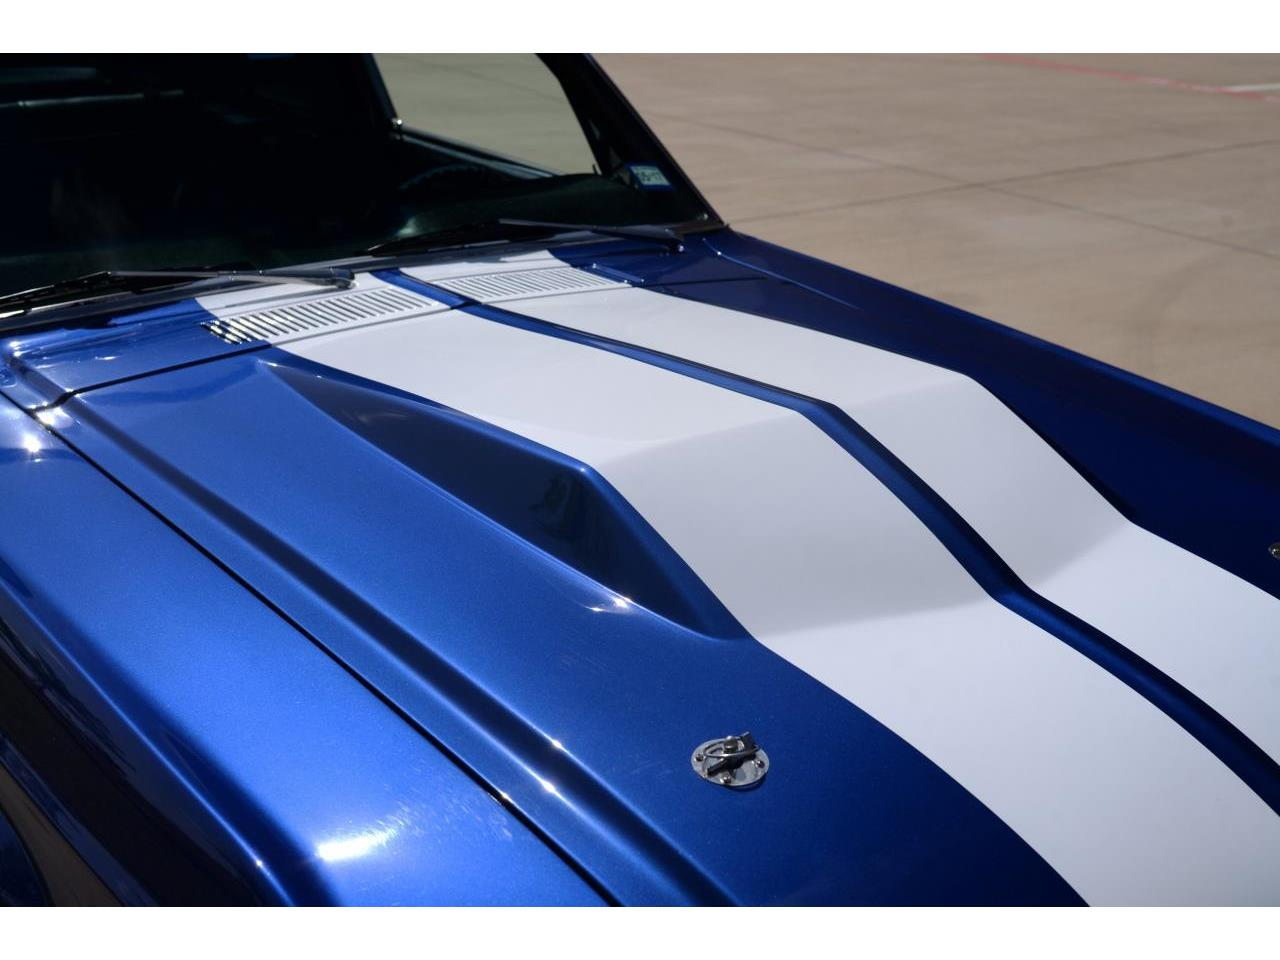 Large Picture of Classic '67 Mustang located in Texas - $79,000.00 Offered by Gateway Classic Cars - Dallas - L5RP